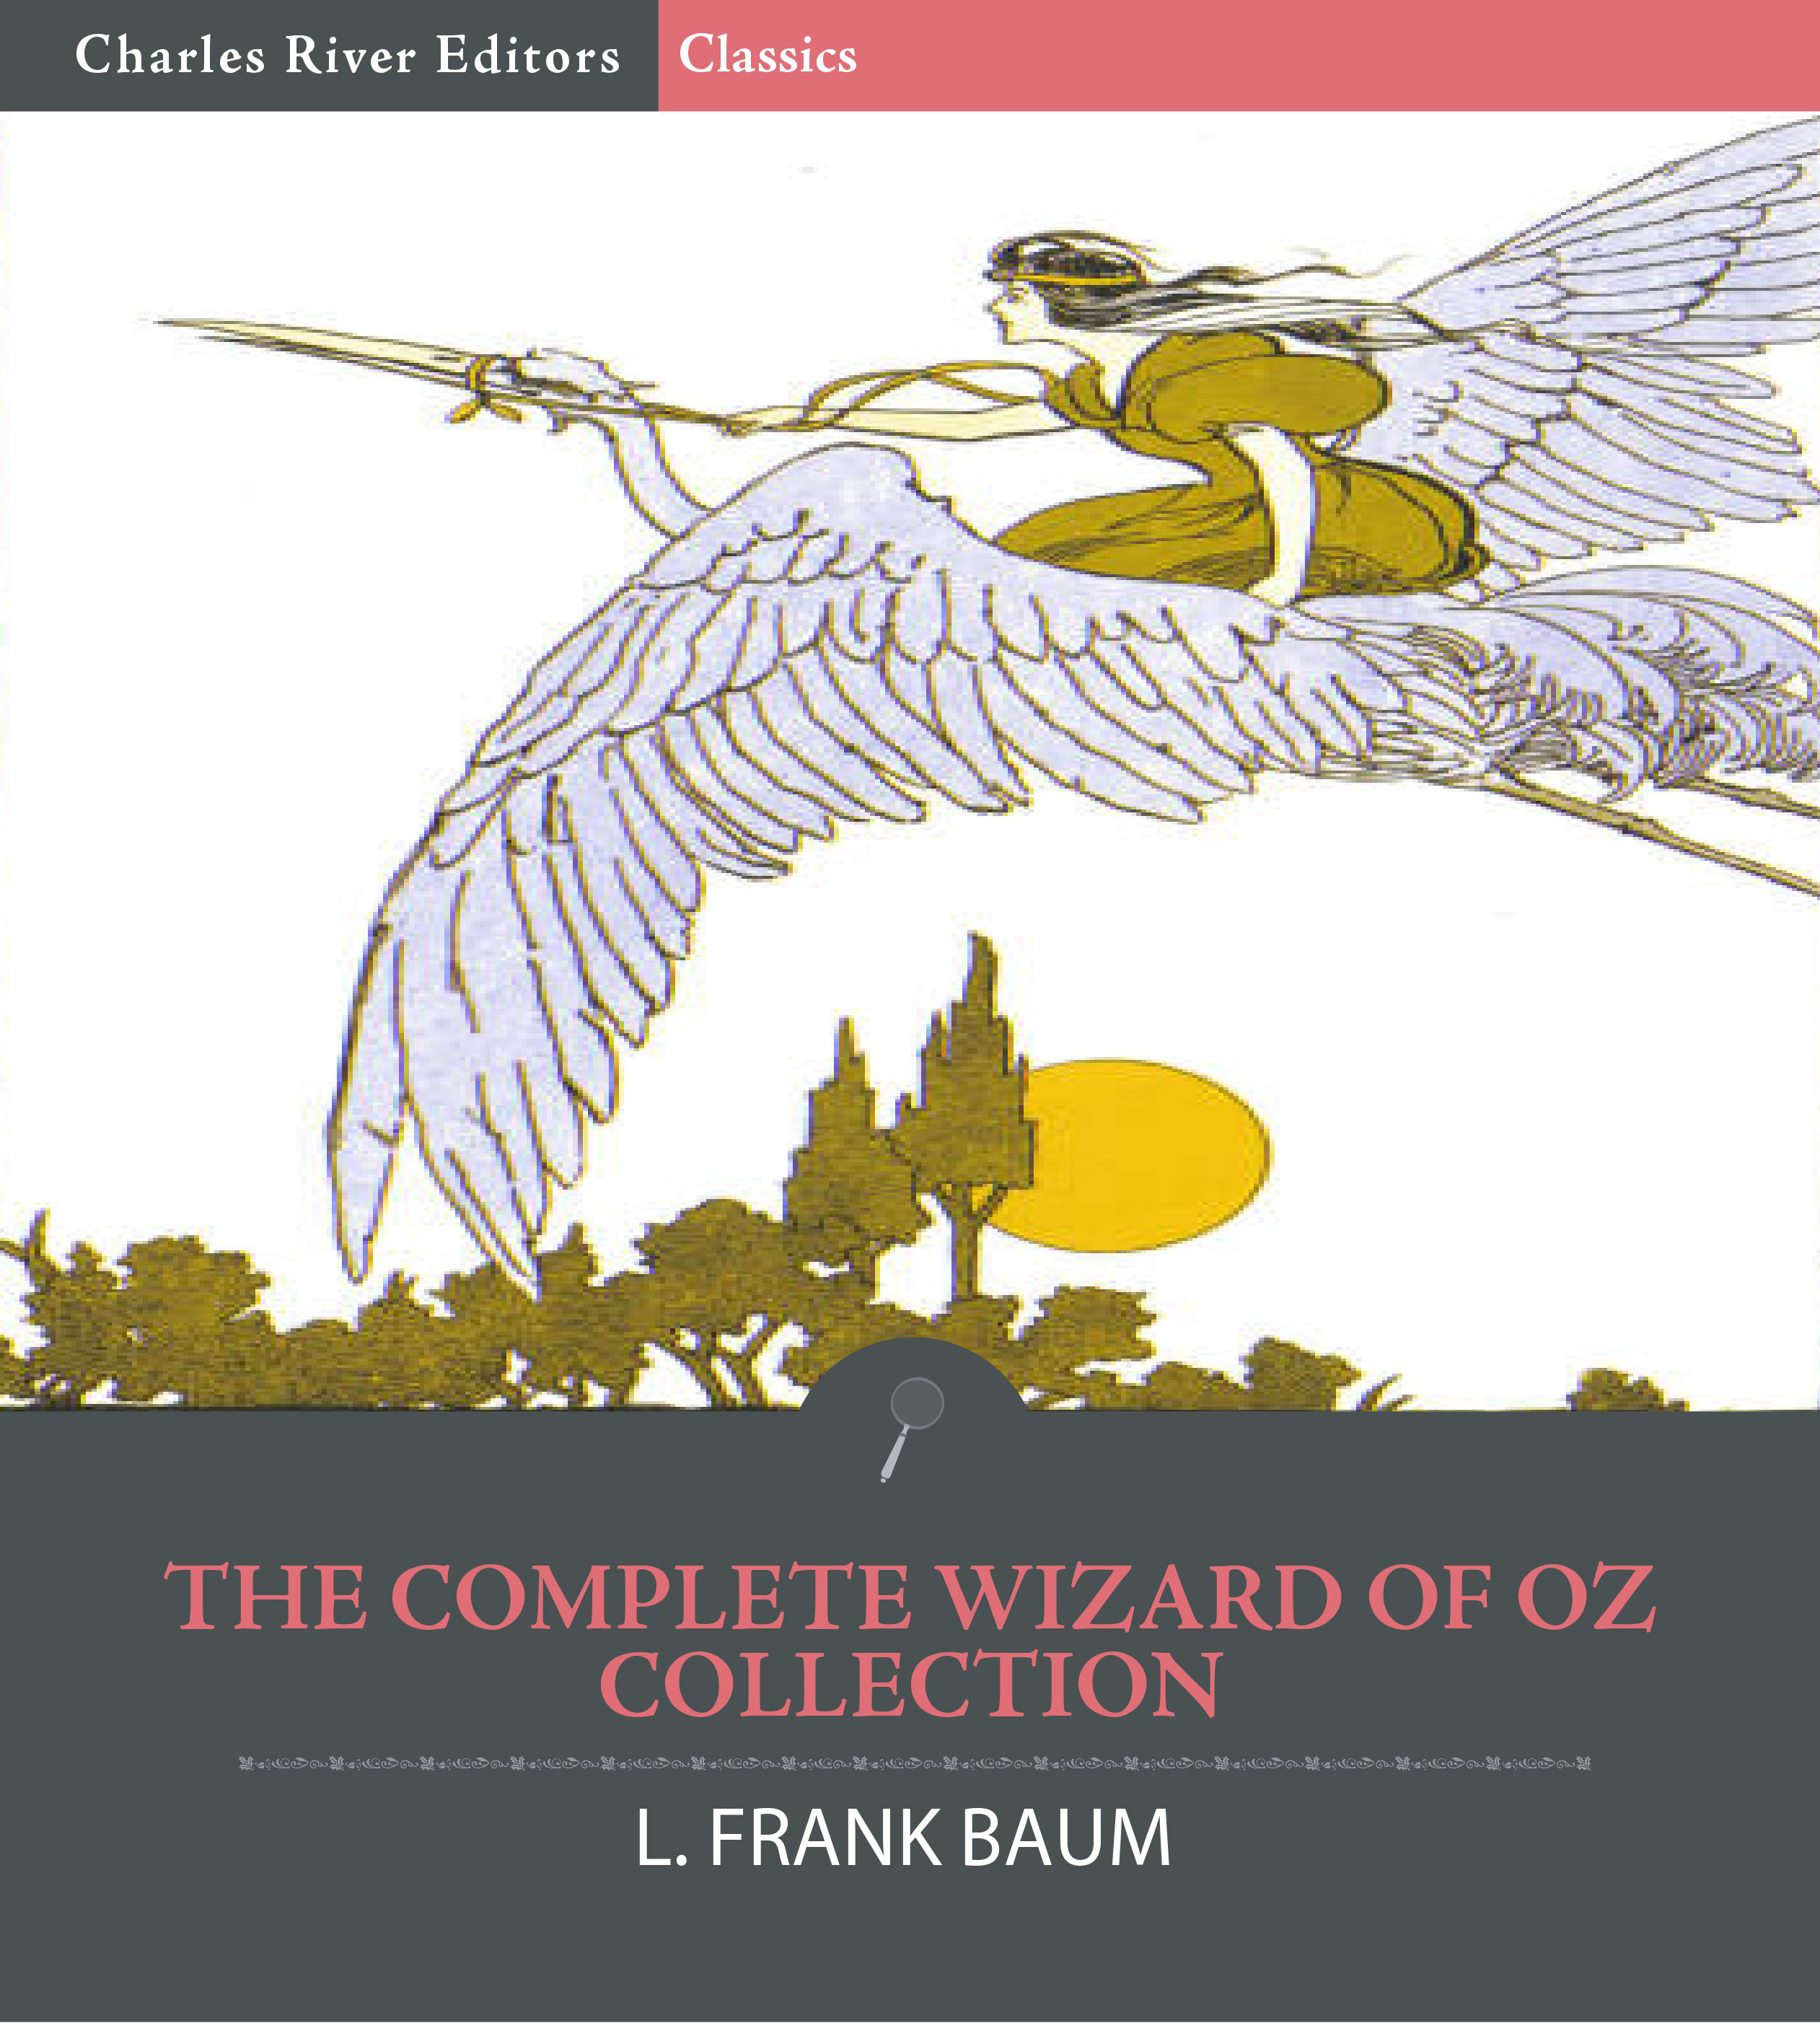 The Complete Wizard of Oz Collection: All 15 Books (Illustrated Edition)